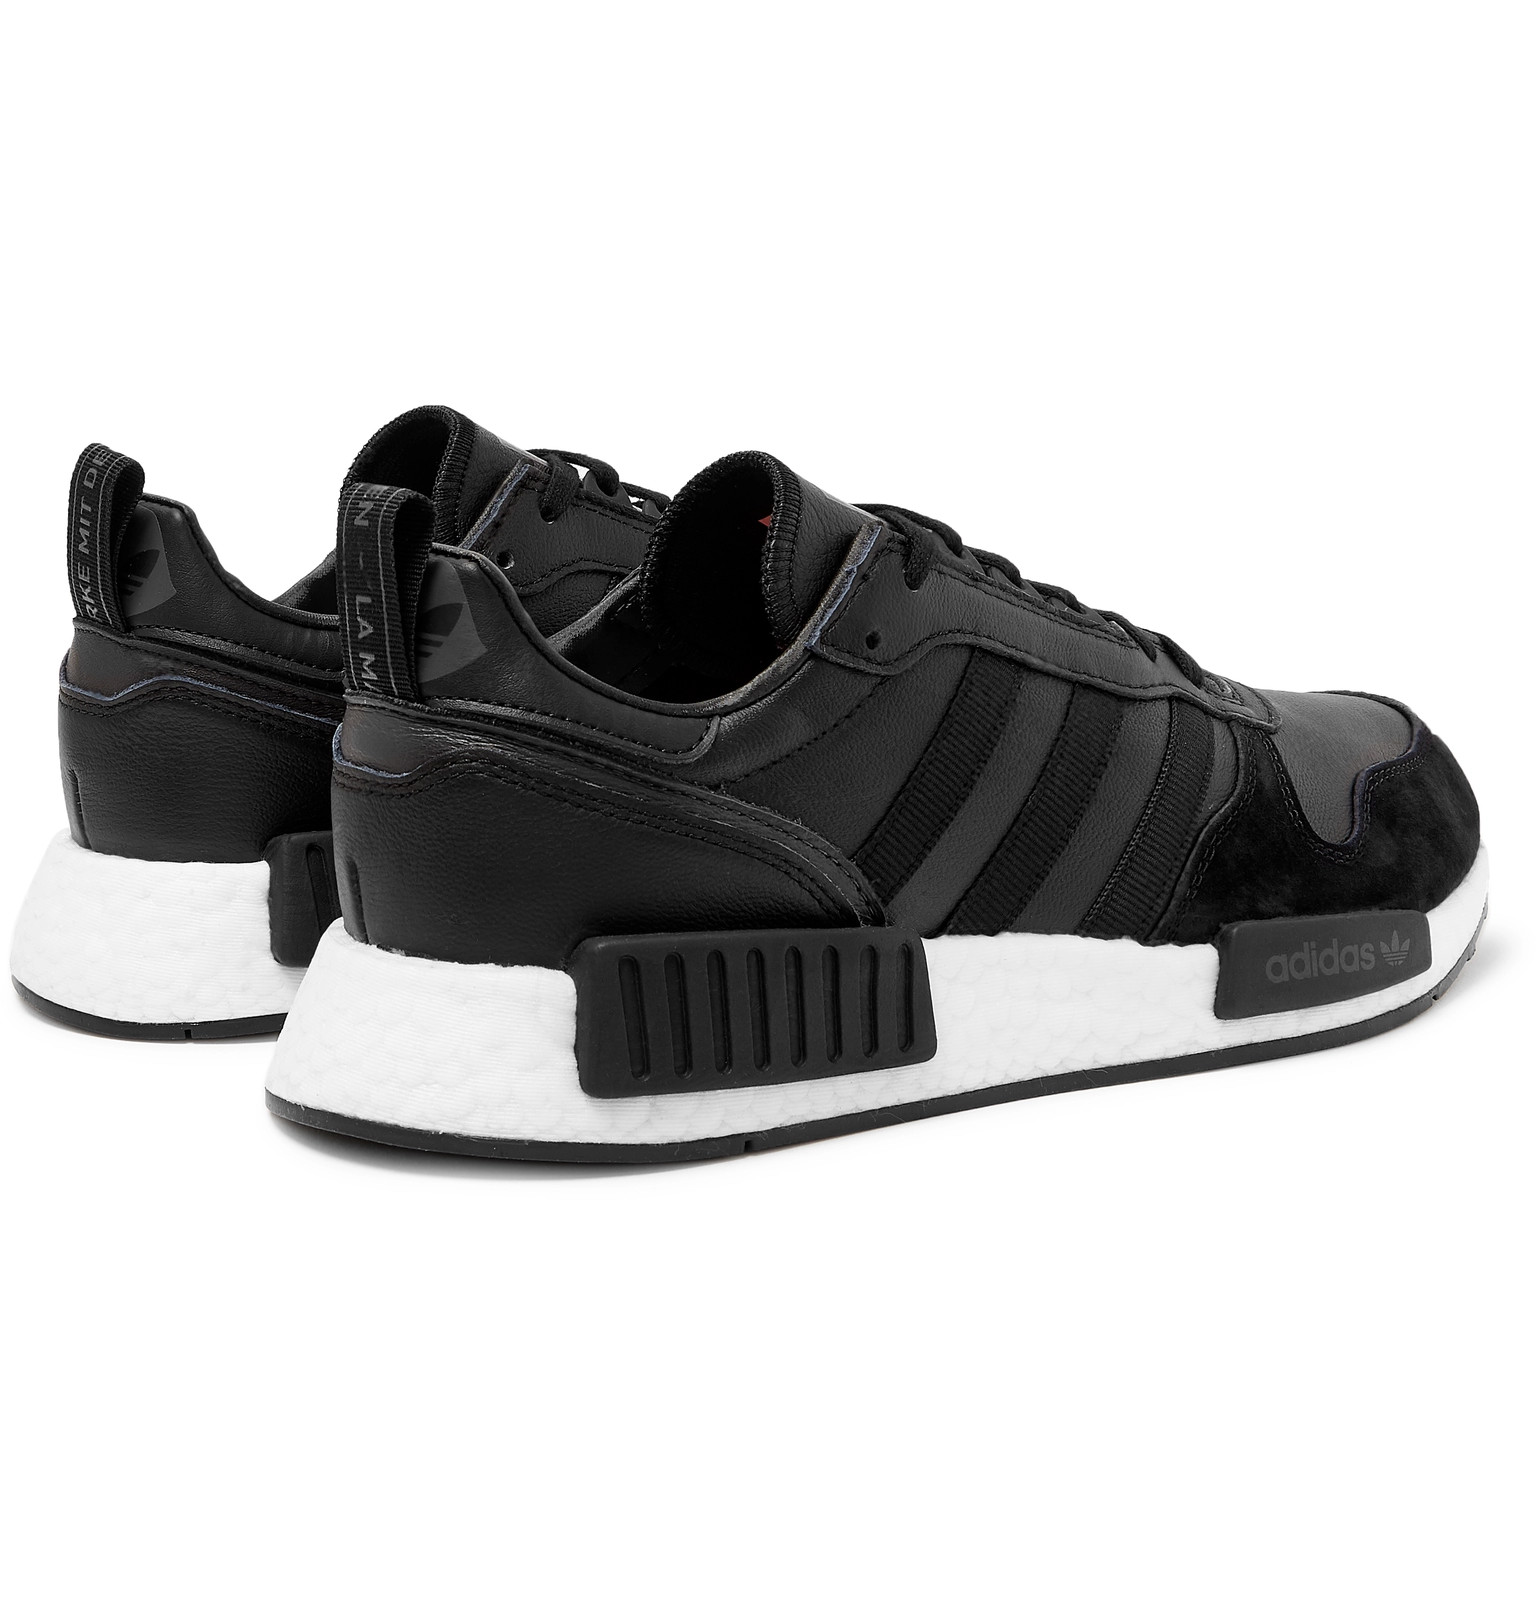 6785d3afca702c adidas OriginalsRising Star x R1 Grosgrain-Trimmed Leather and Suede  Sneakers